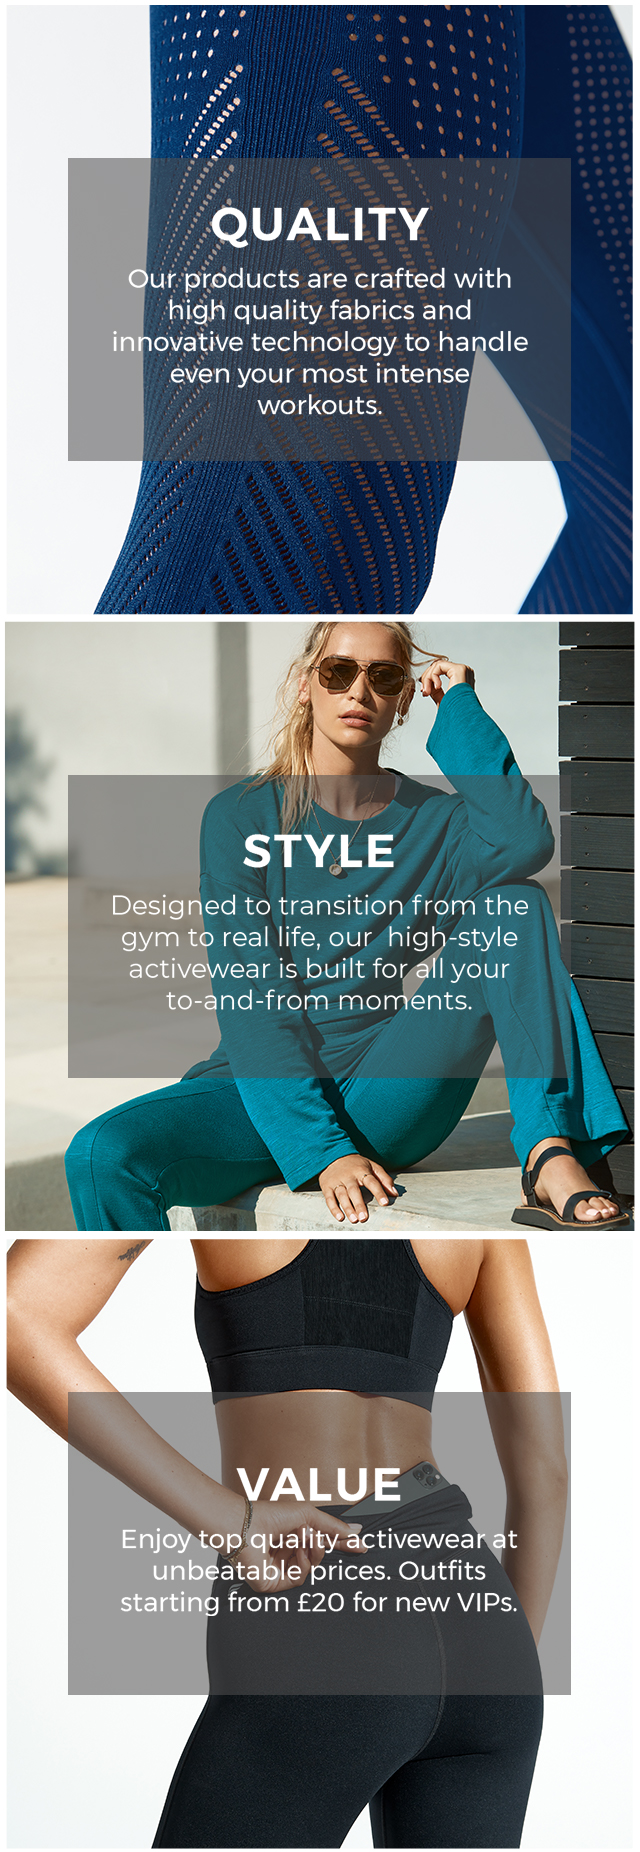 Gym Clothes Fitness Clothing Activewear By Kate Hudson Fabletics Uk